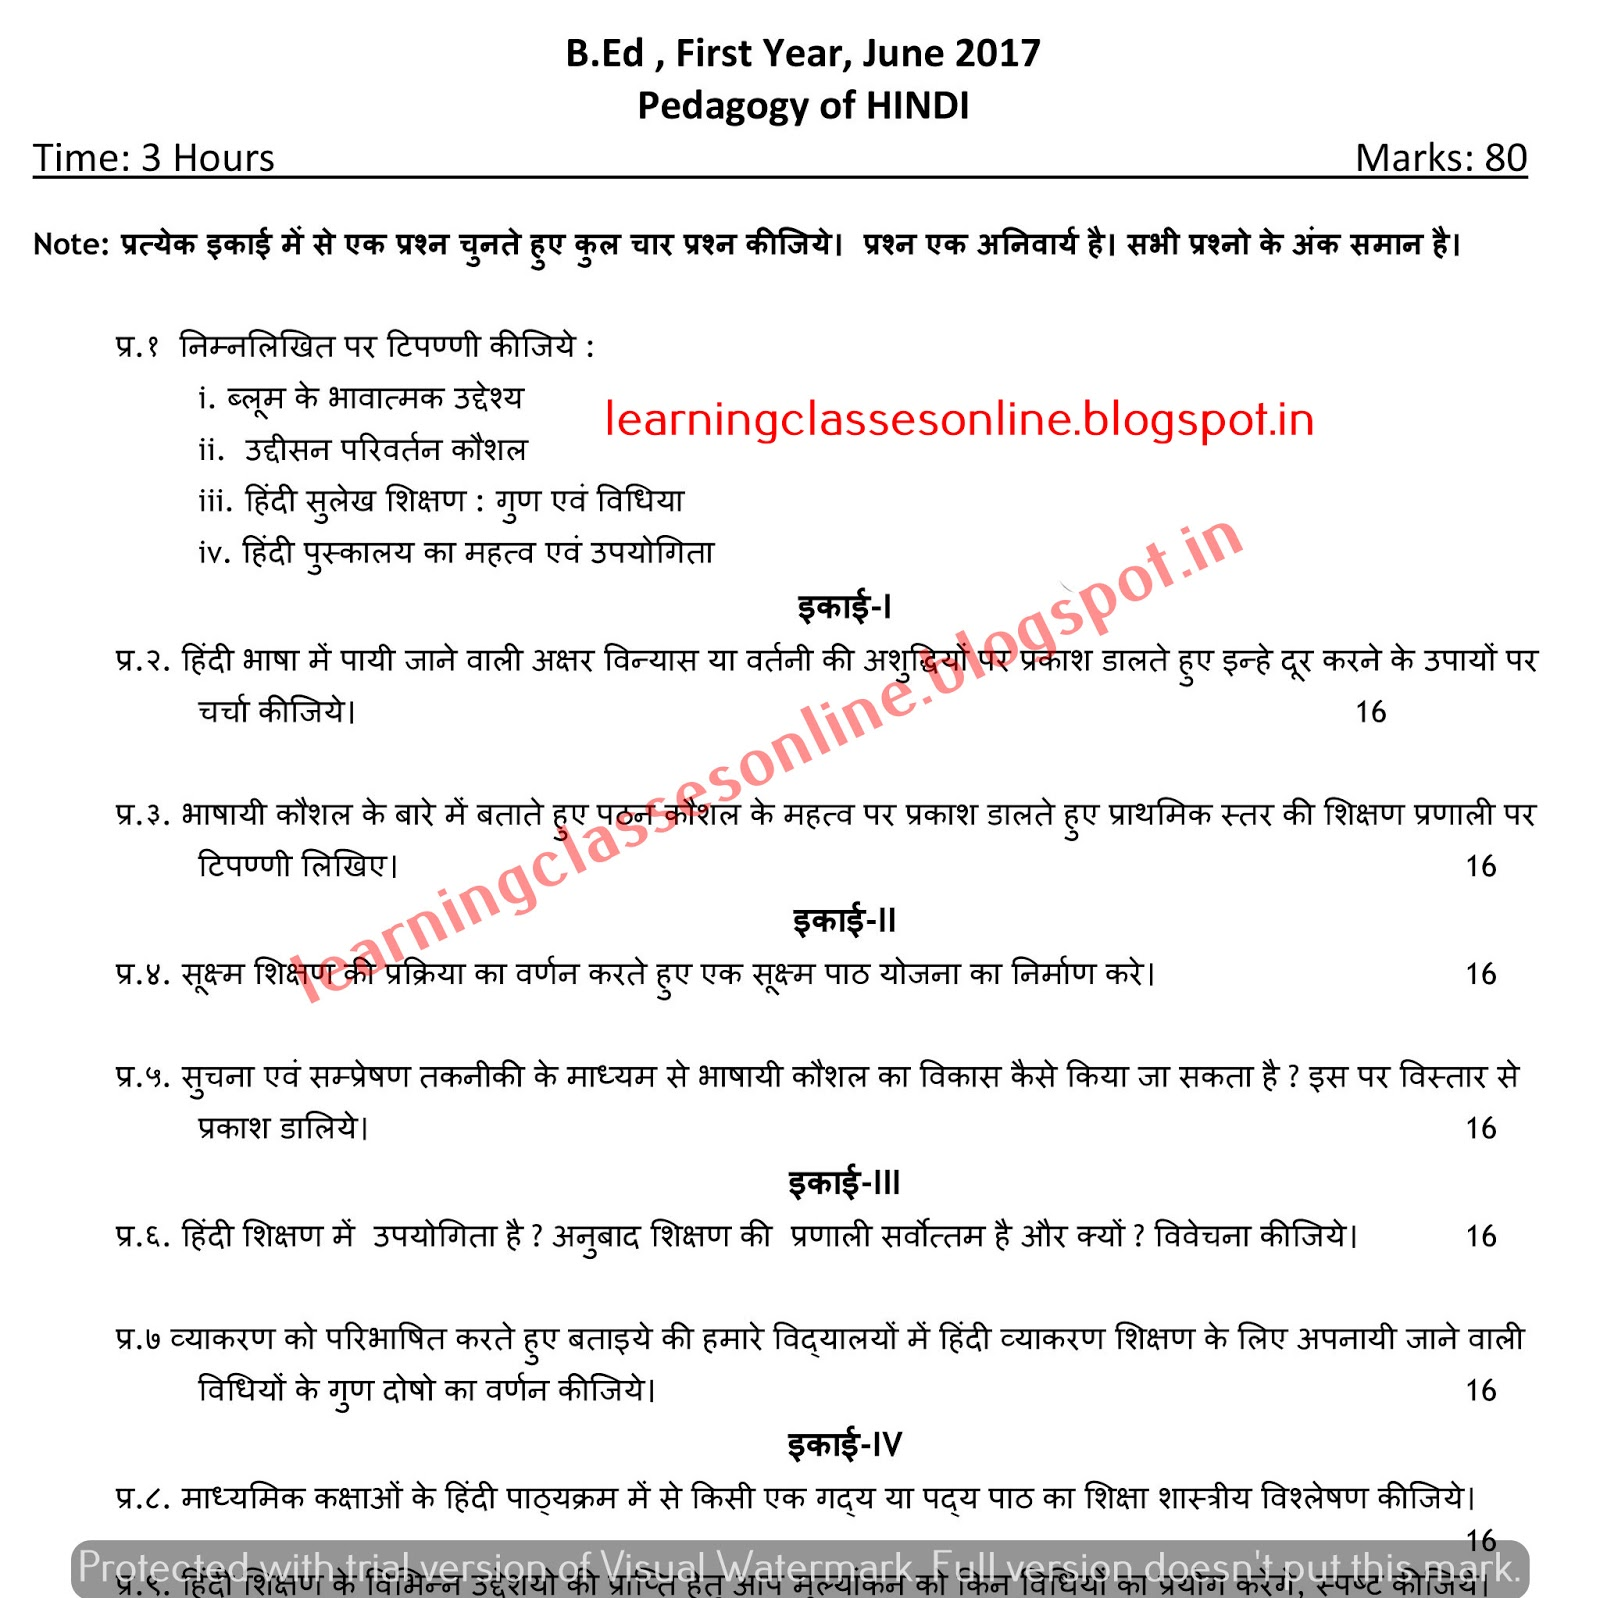 Pedagogy of Hindi question paper